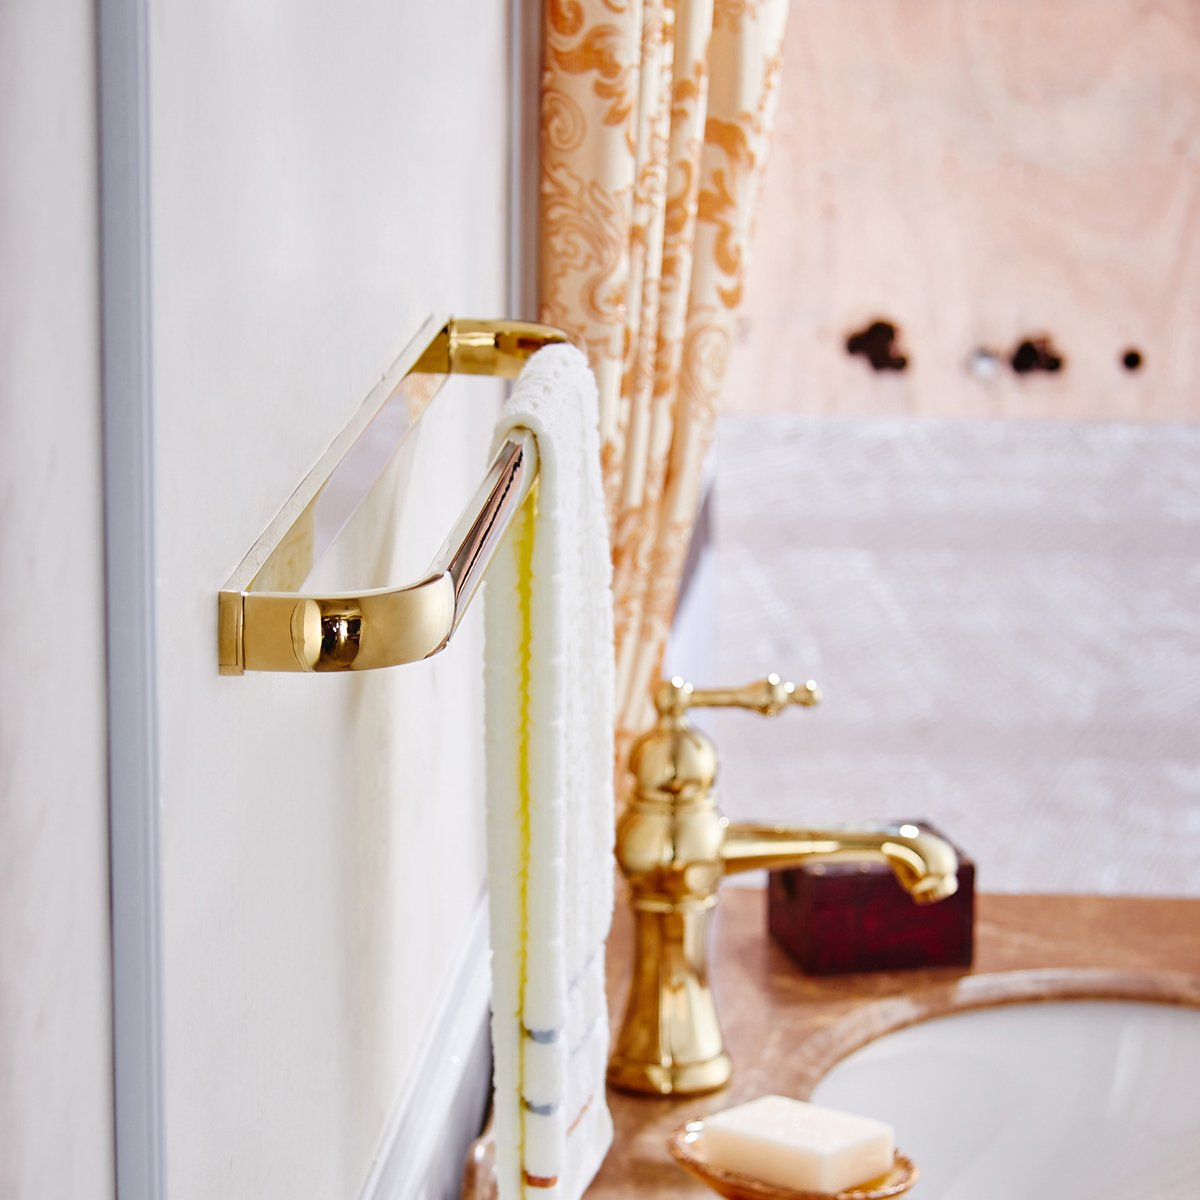 Aothpher Wall Mounted Bathroom Approx 24 Inch Double Towel Bar Rack Towel Rail Holder Gold Polished